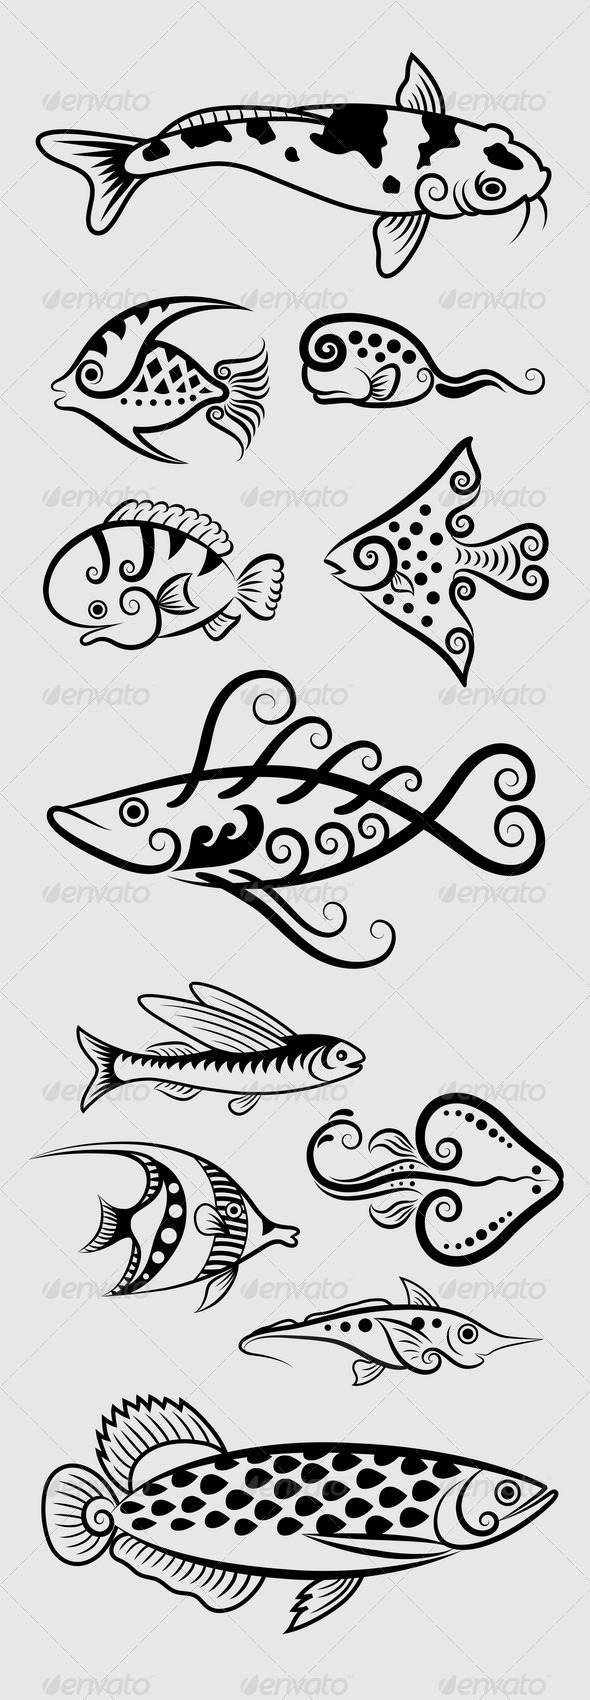 Decorative Fish Symbols - Animals Characters